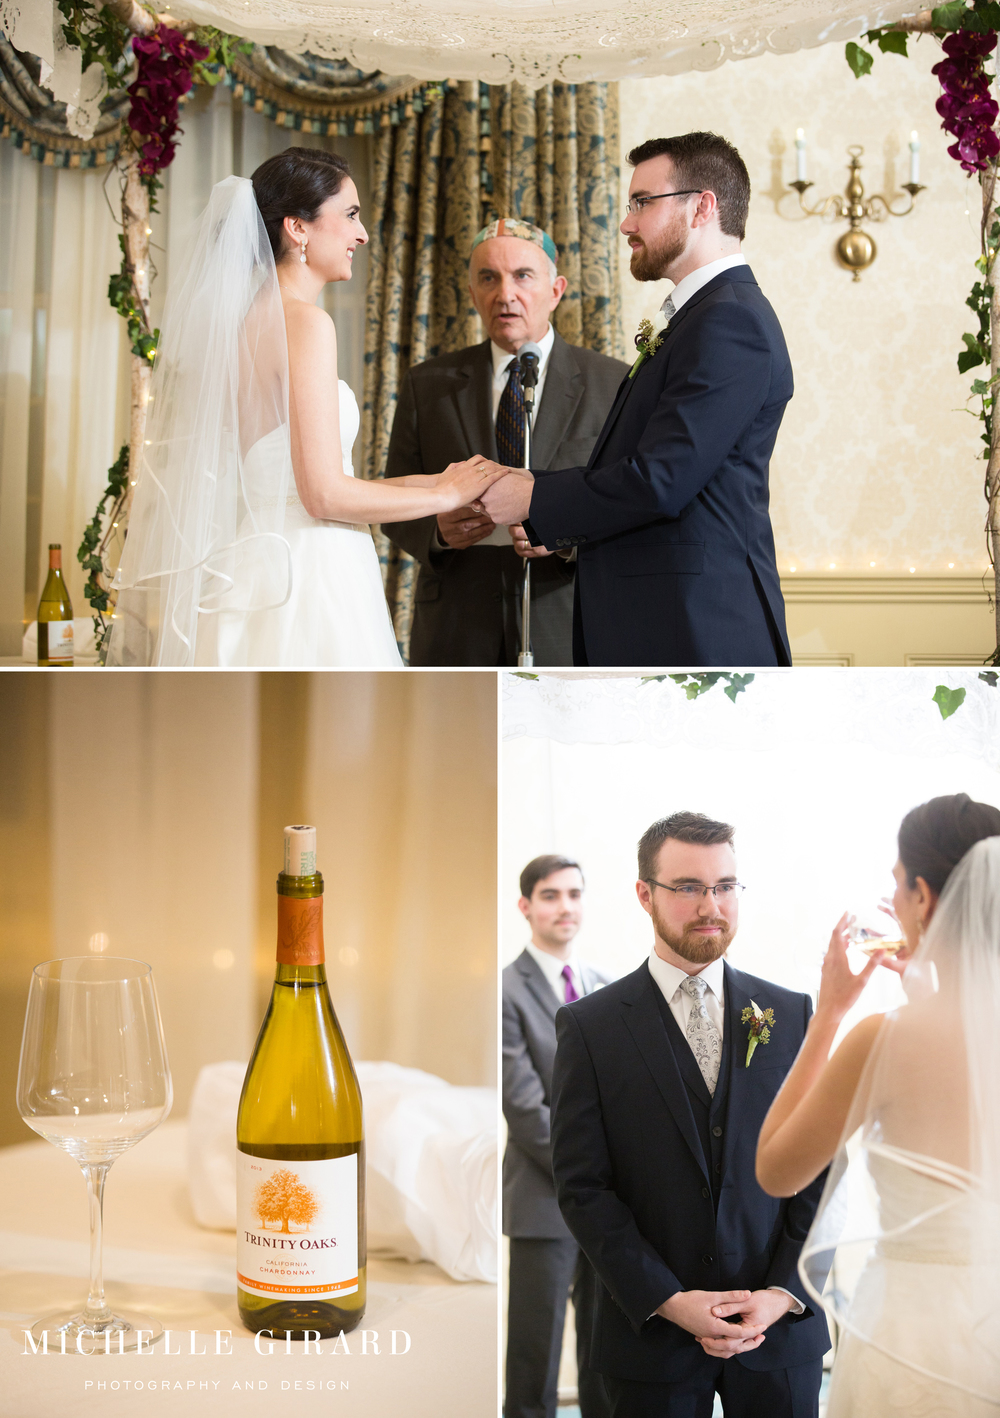 LordJefferyInnWedding_AmherstMa_MichelleGirardPhotography32.jpg